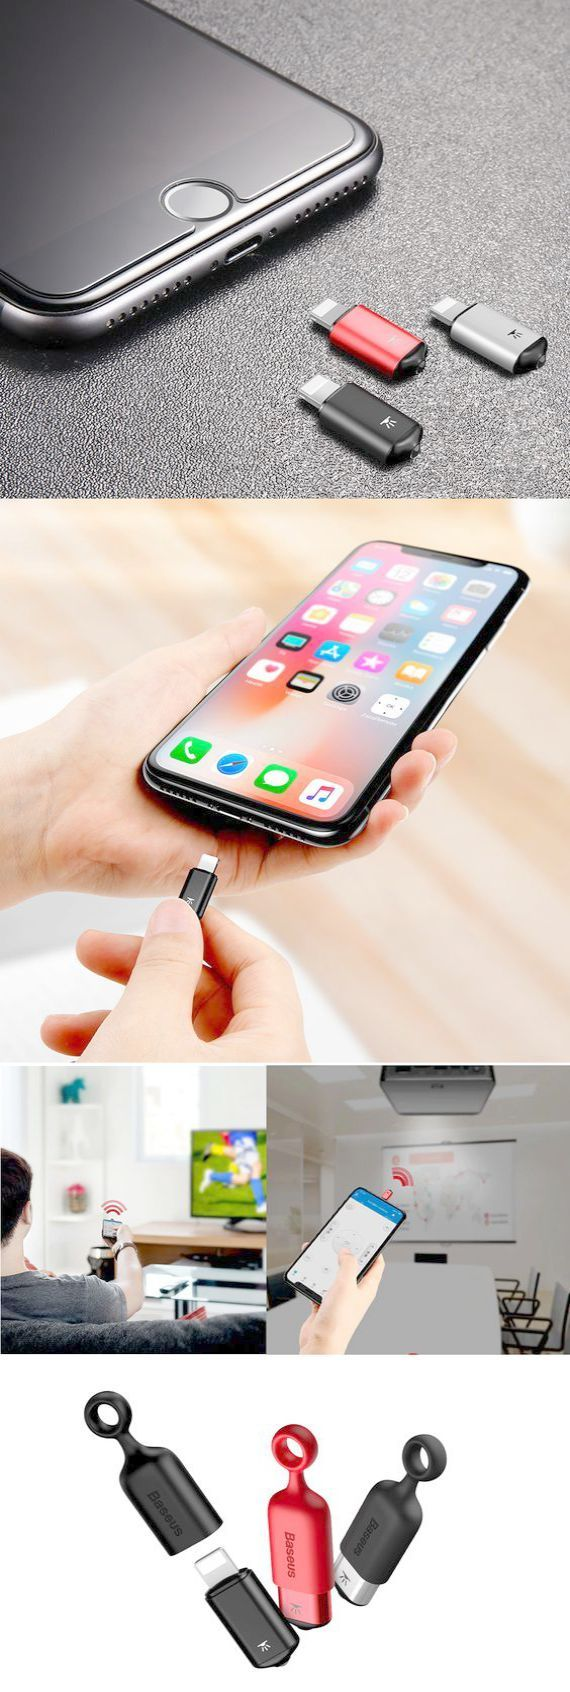 Hottest Gadgets Of 2019 into Smart Technology Plus Security Camera Nj not Gadget…